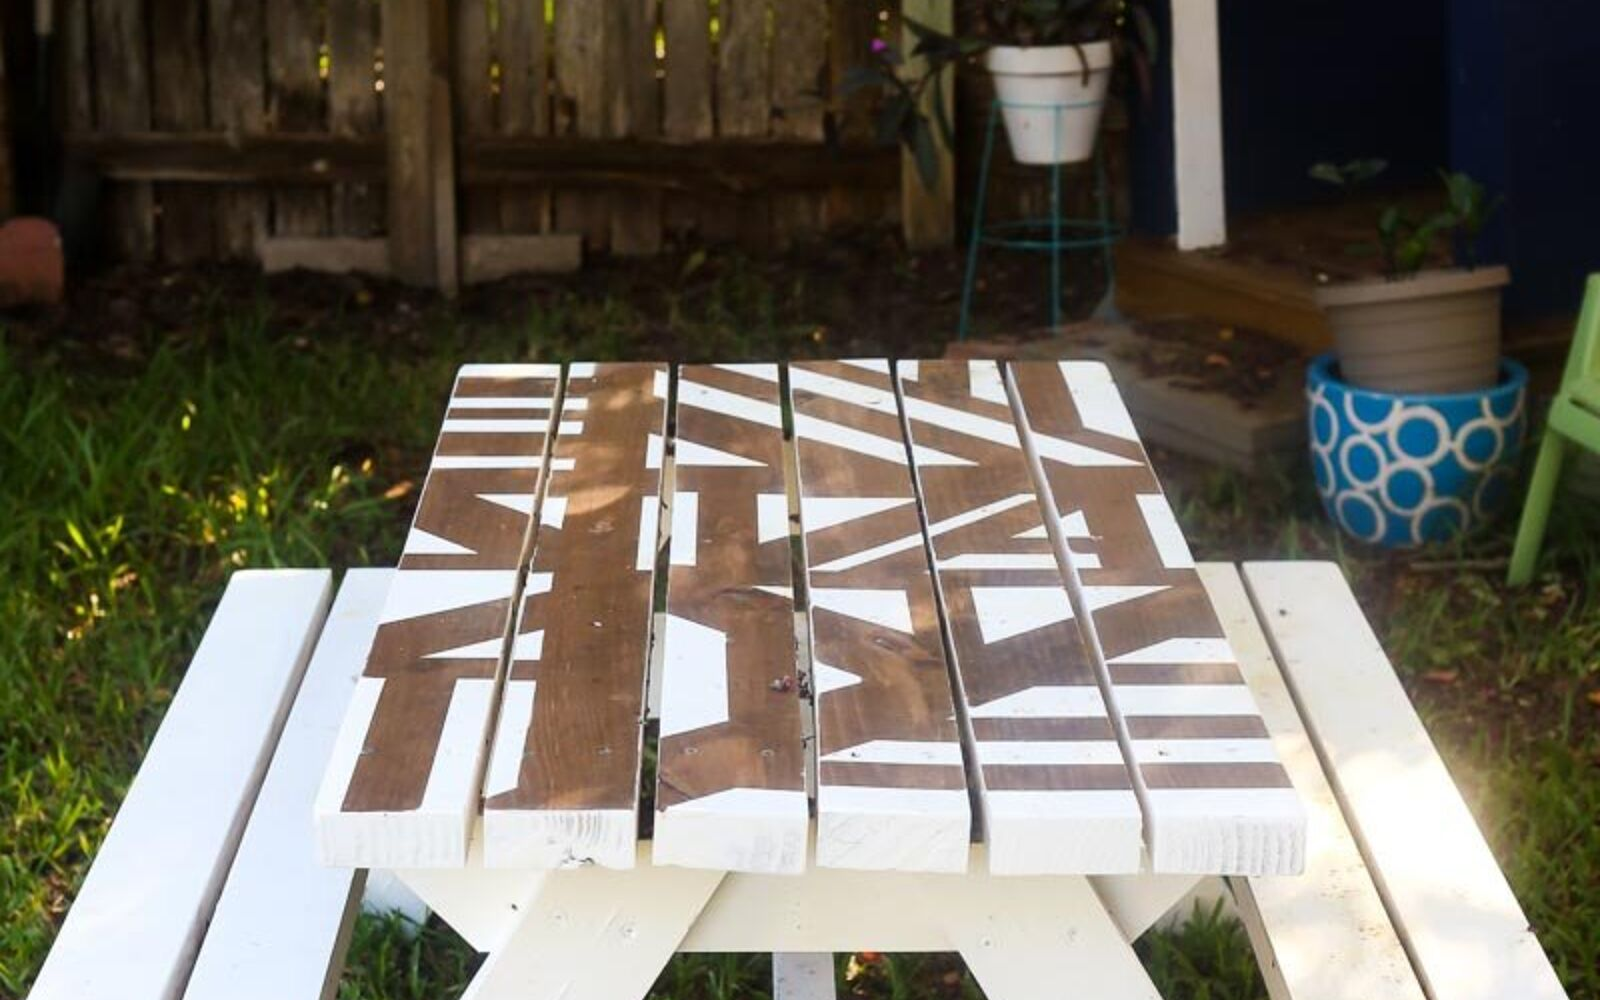 s upgrade your backyard with these 30 clever ideas, Paint a fun pattern on a picnic table